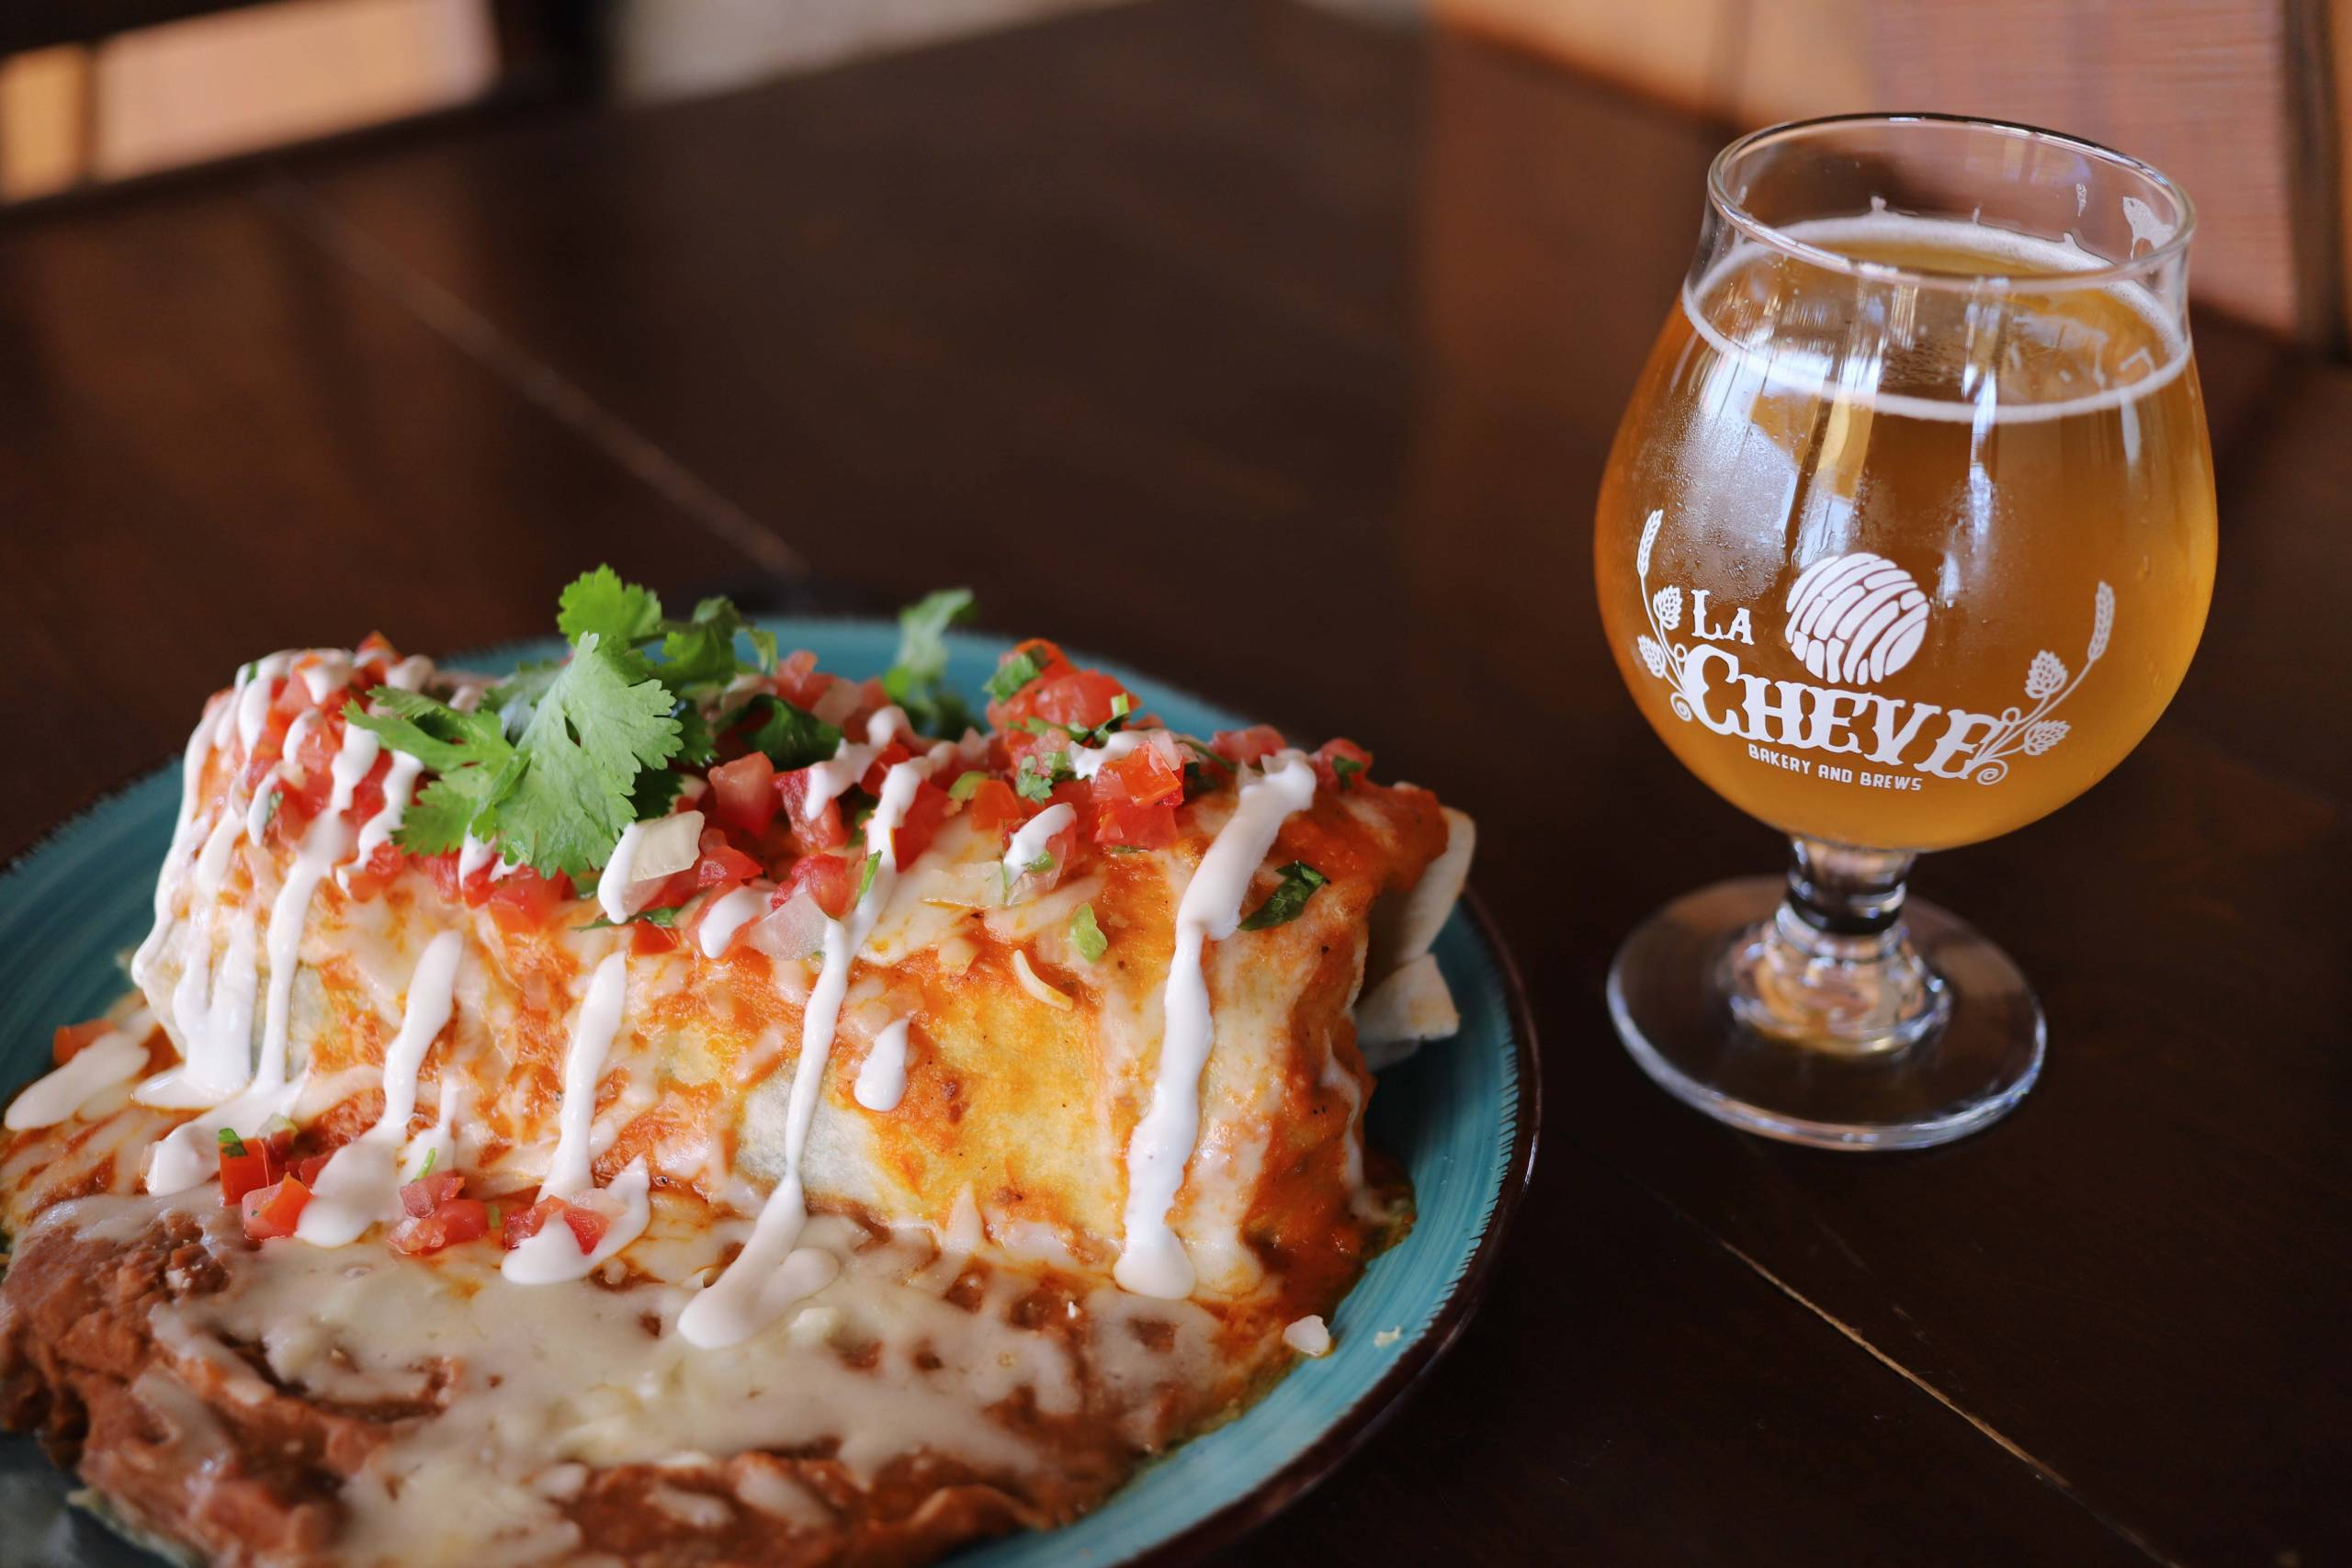 A sauce-soaked burrito de chile relleno and a glass of beer.